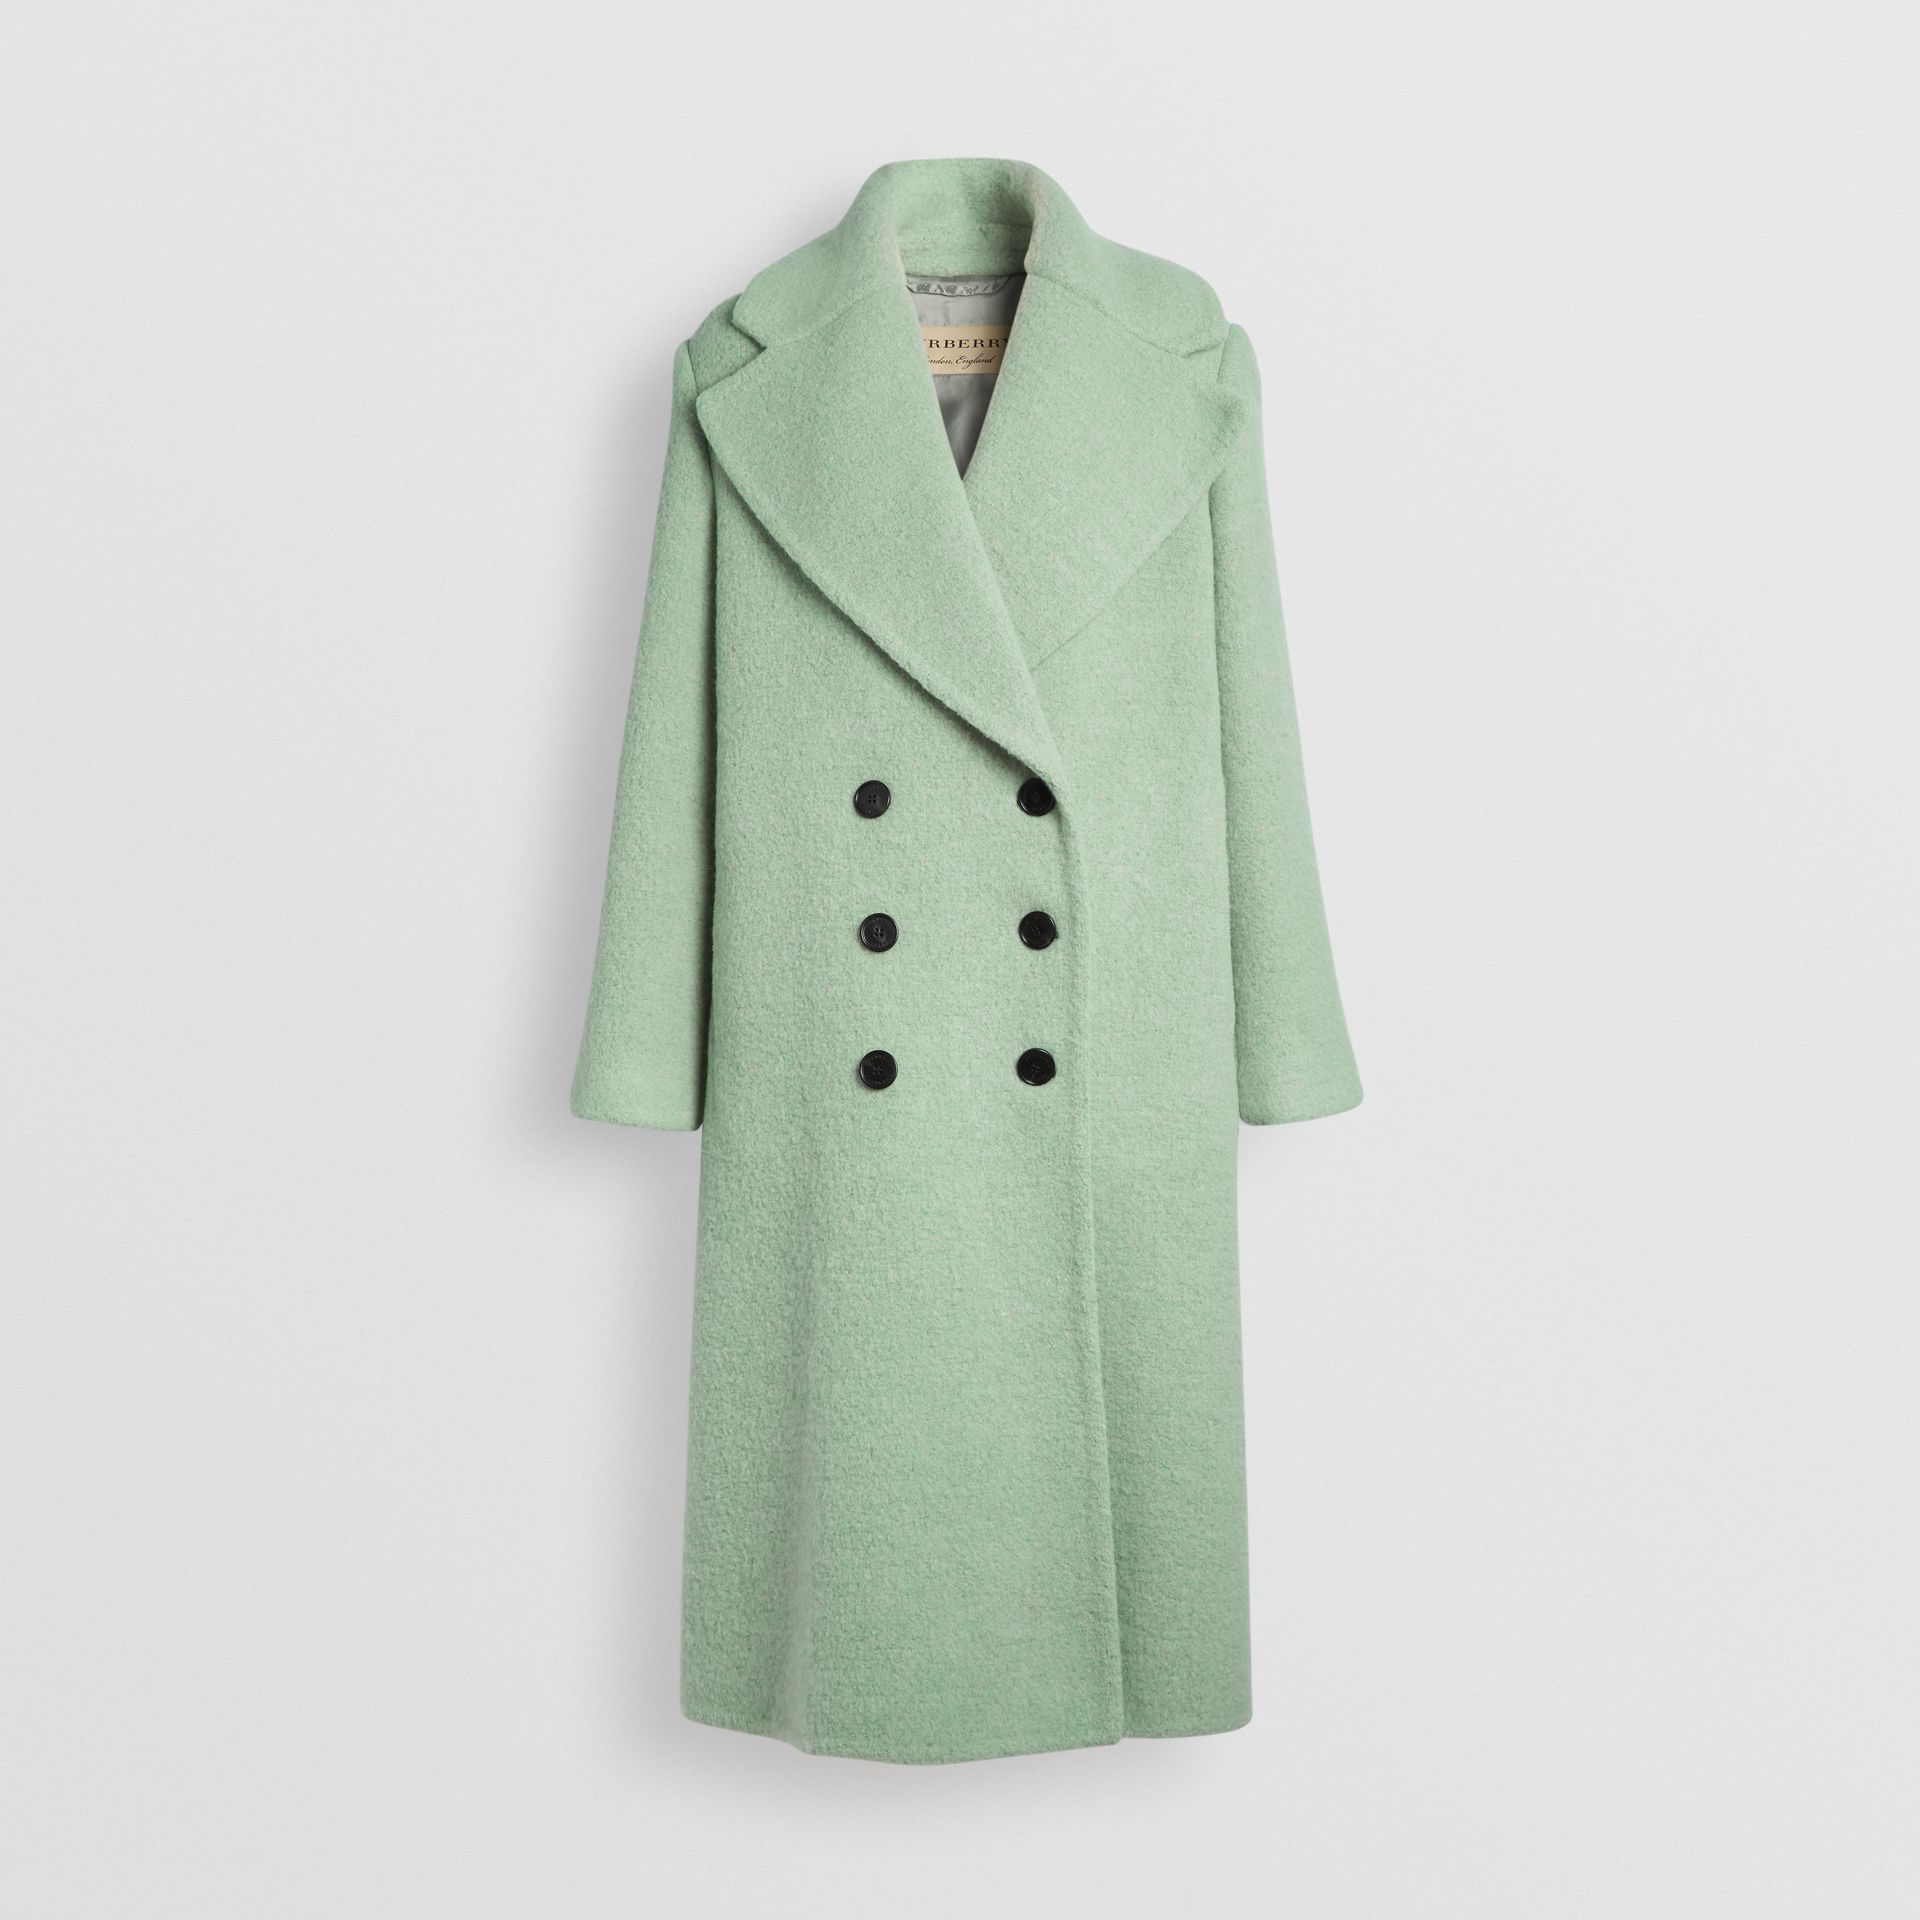 Double-faced Wool Alpaca Blend Oversized Coat in Celadon Green - Women | Burberry - gallery image 3